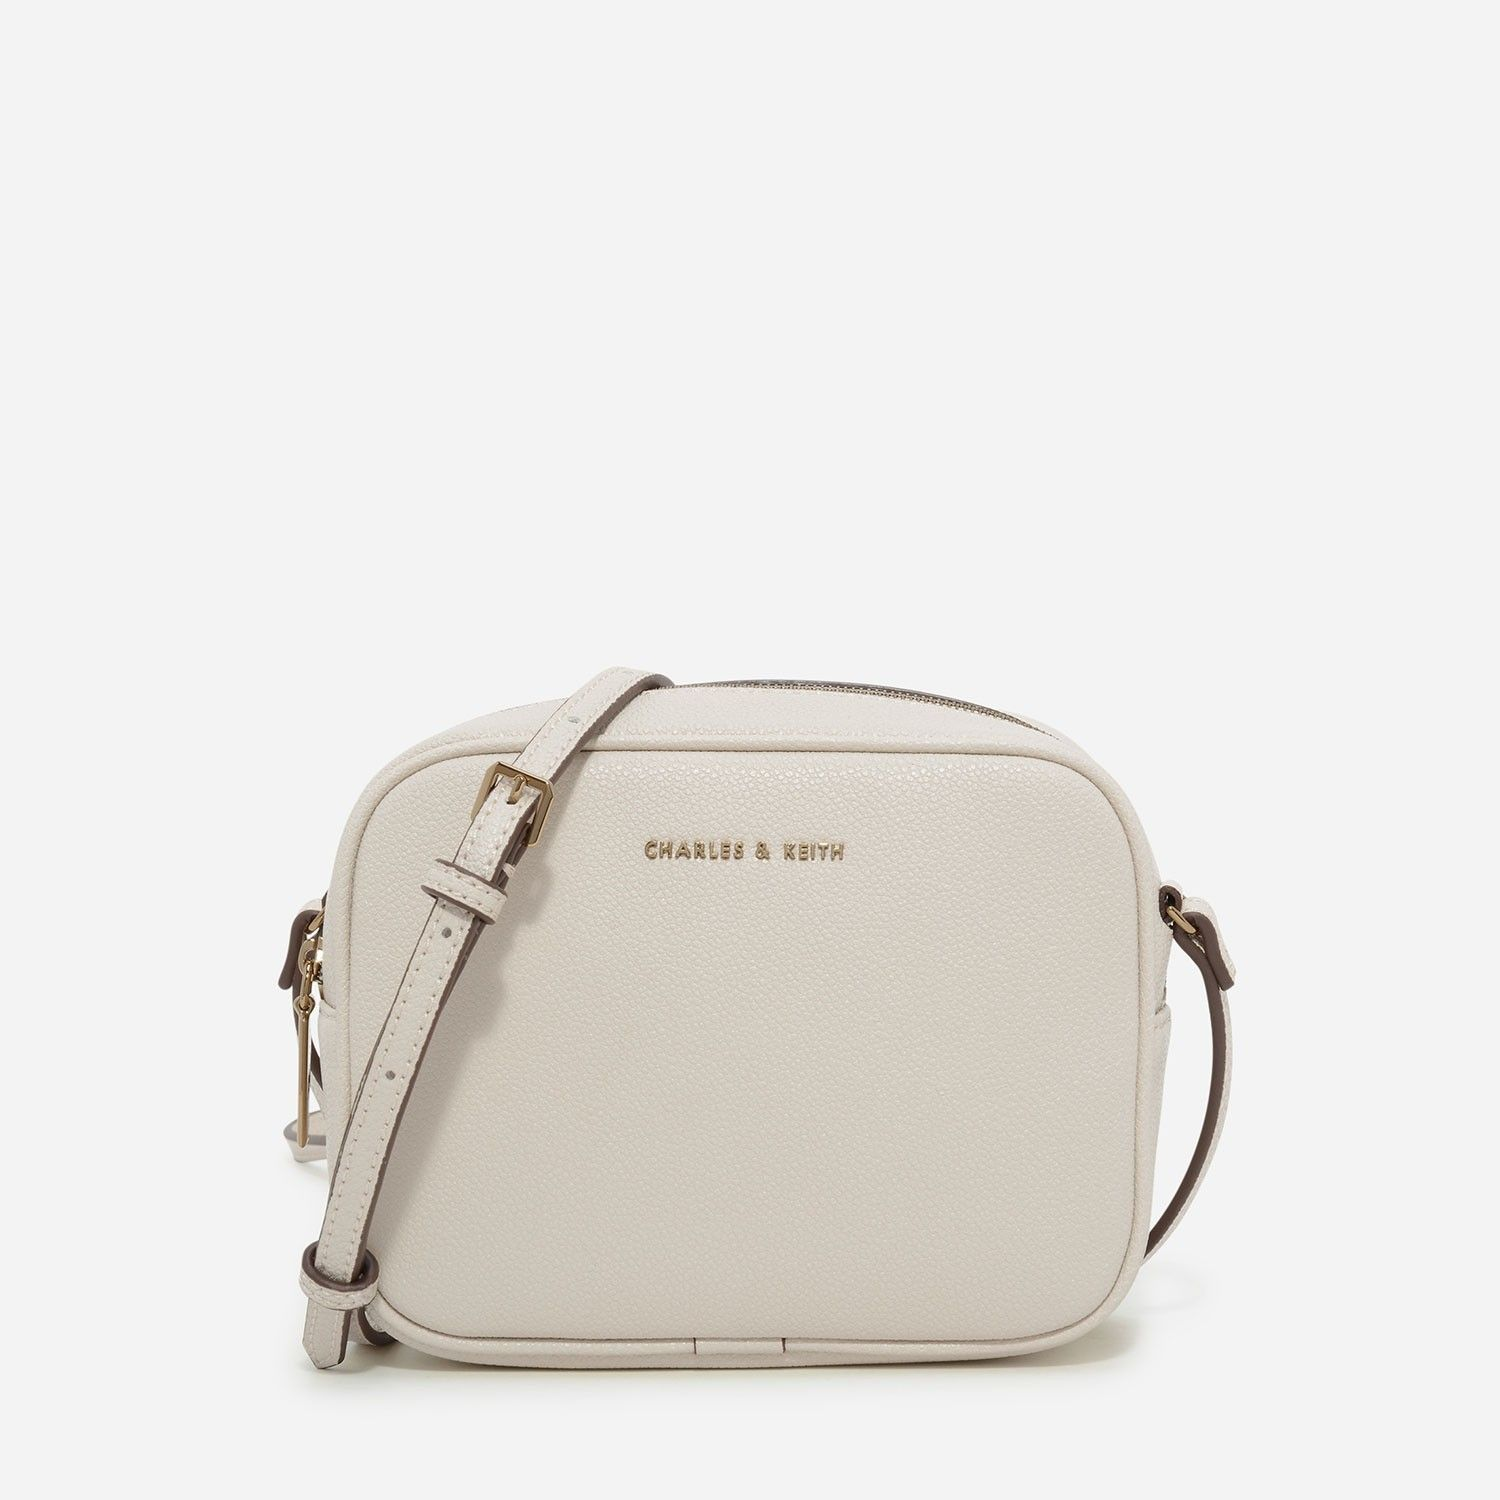 a324c3661201 CHARLES & KEITH - Bags. Ivory small-sized boxy textured sling bag featuring  curved edges. Fastens with a top zip closure.